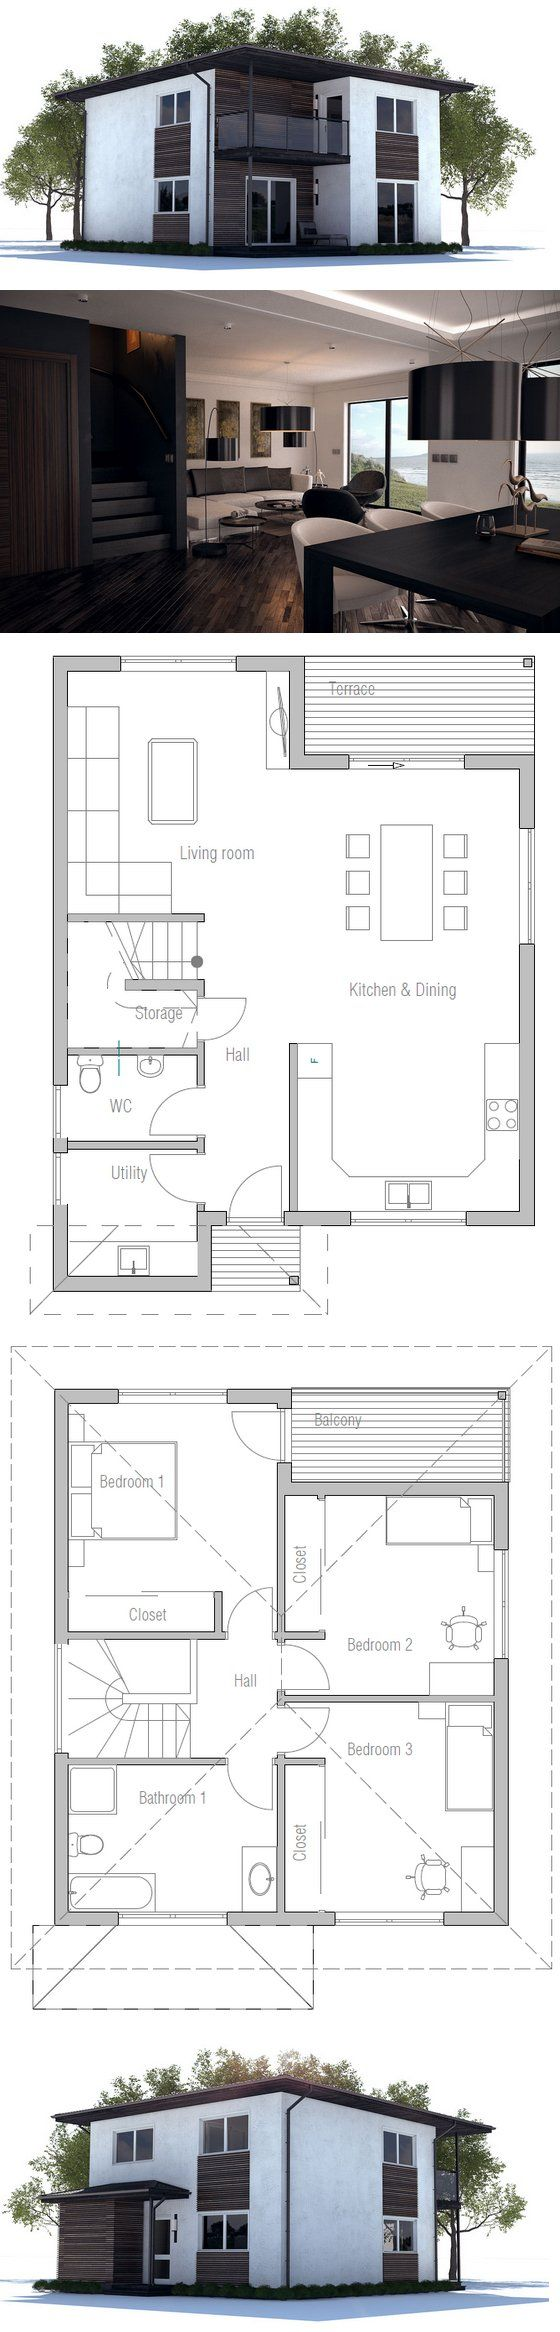 House Plan from www.conceptHome.com House Design 2014